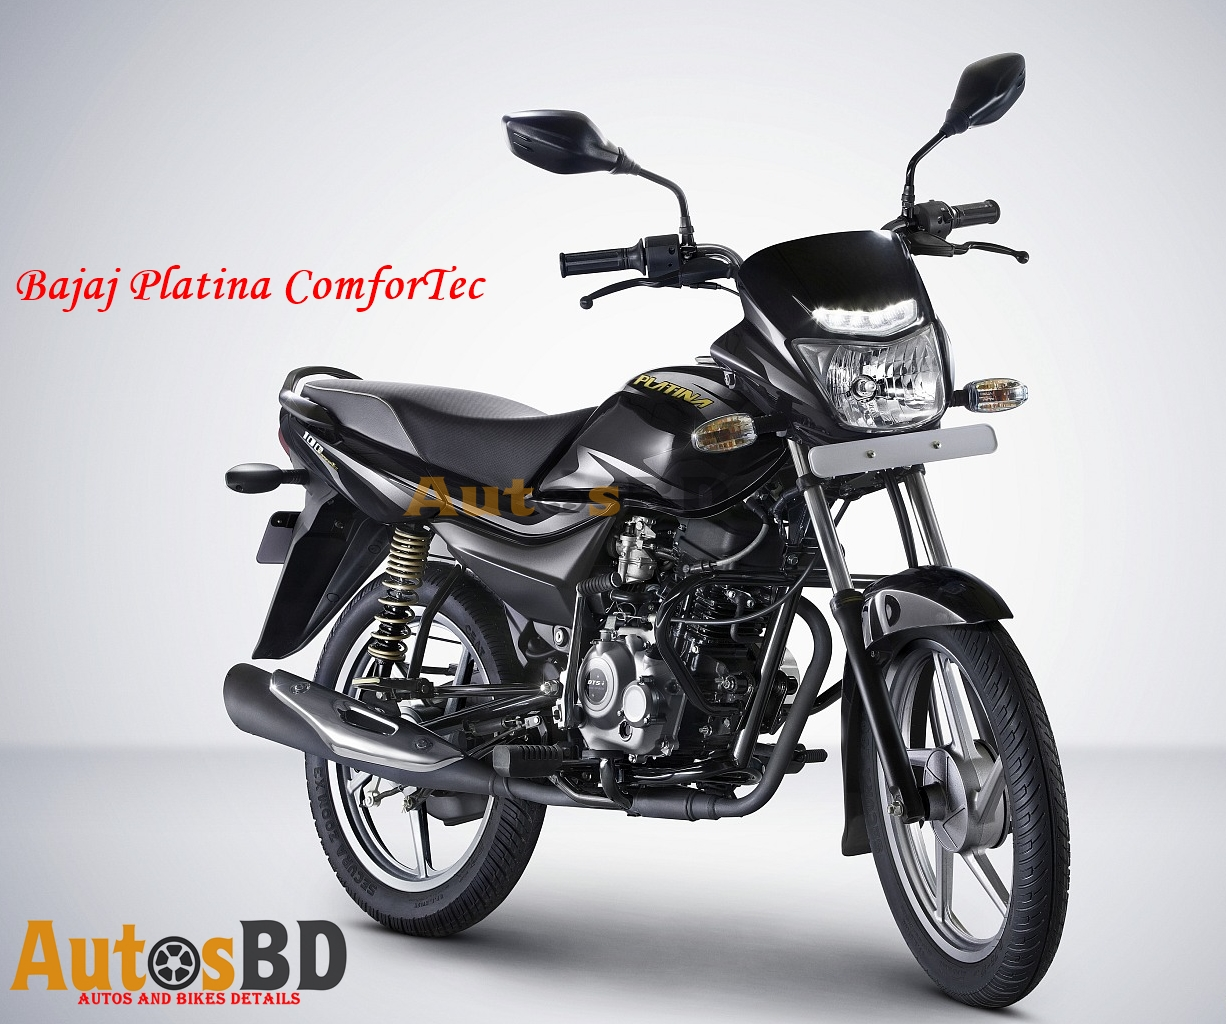 Bajaj Platina 100 ComforTec KS Motorcycle Price in Bangladesh